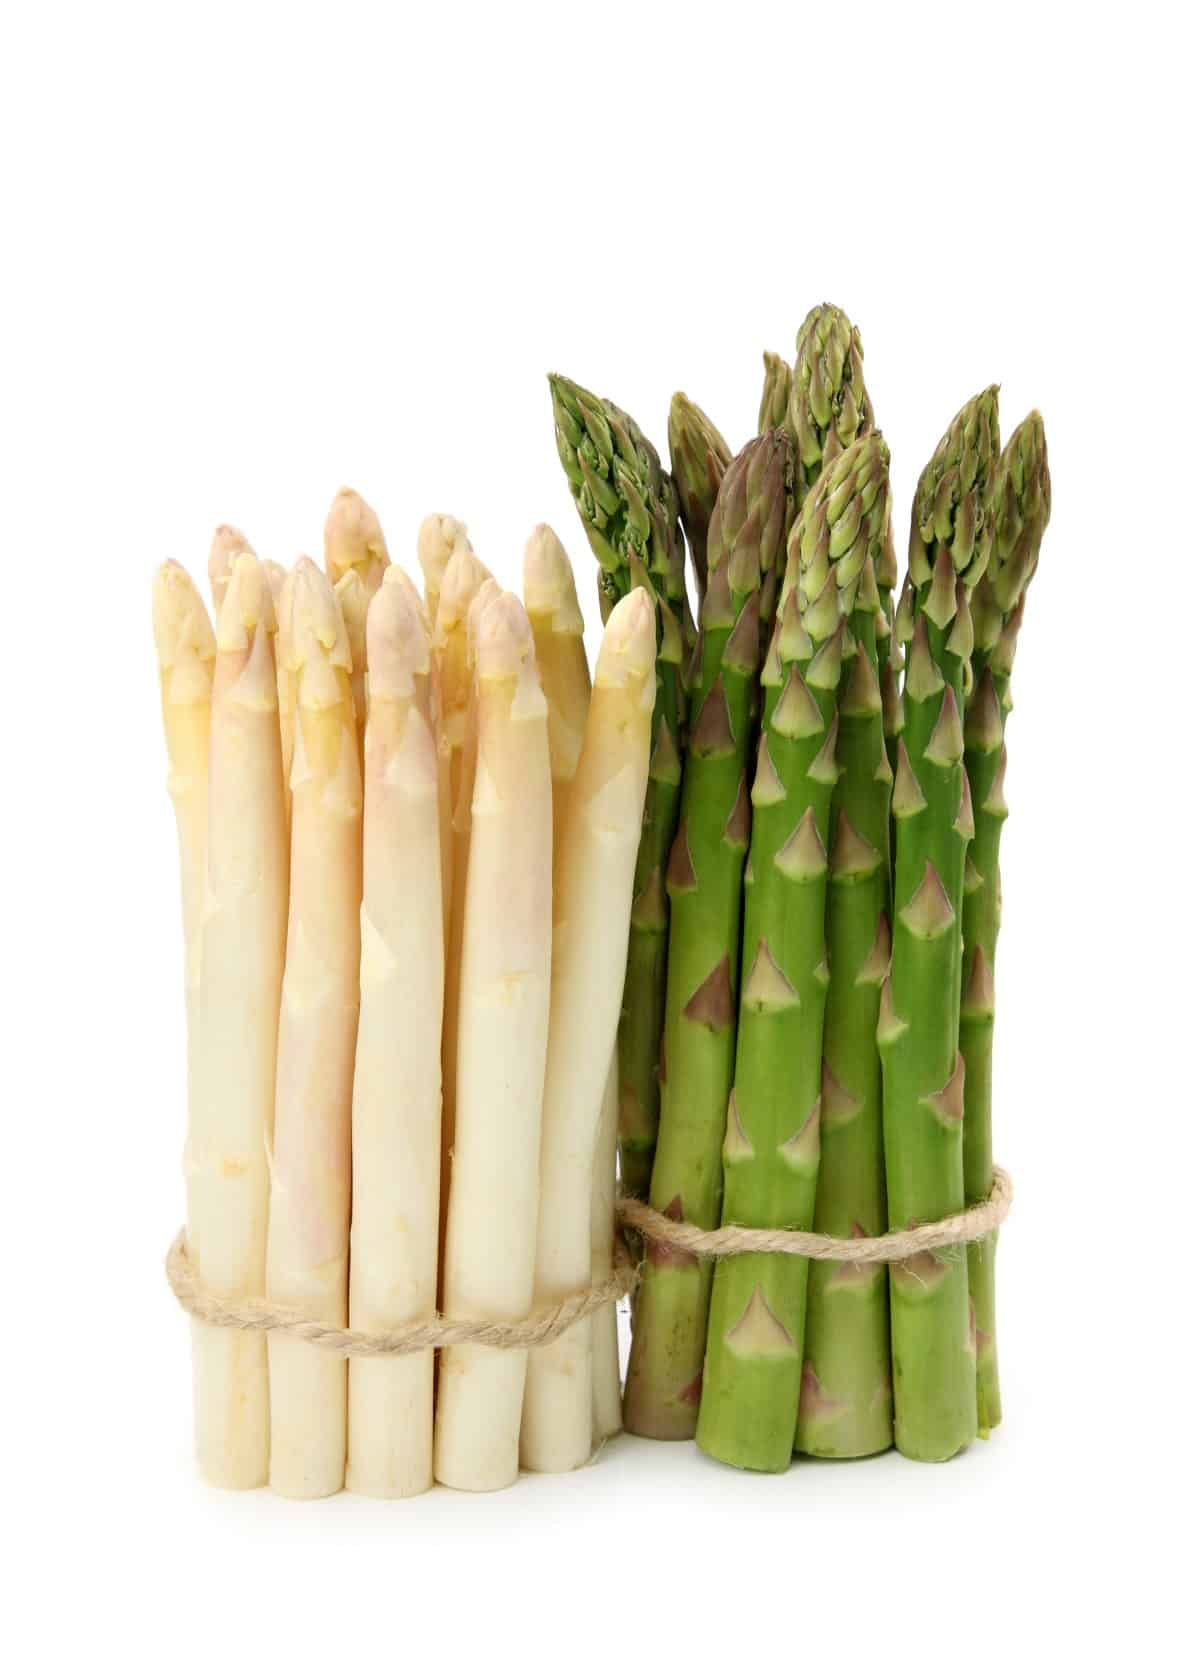 Two bunches of asparagus, one white and one green